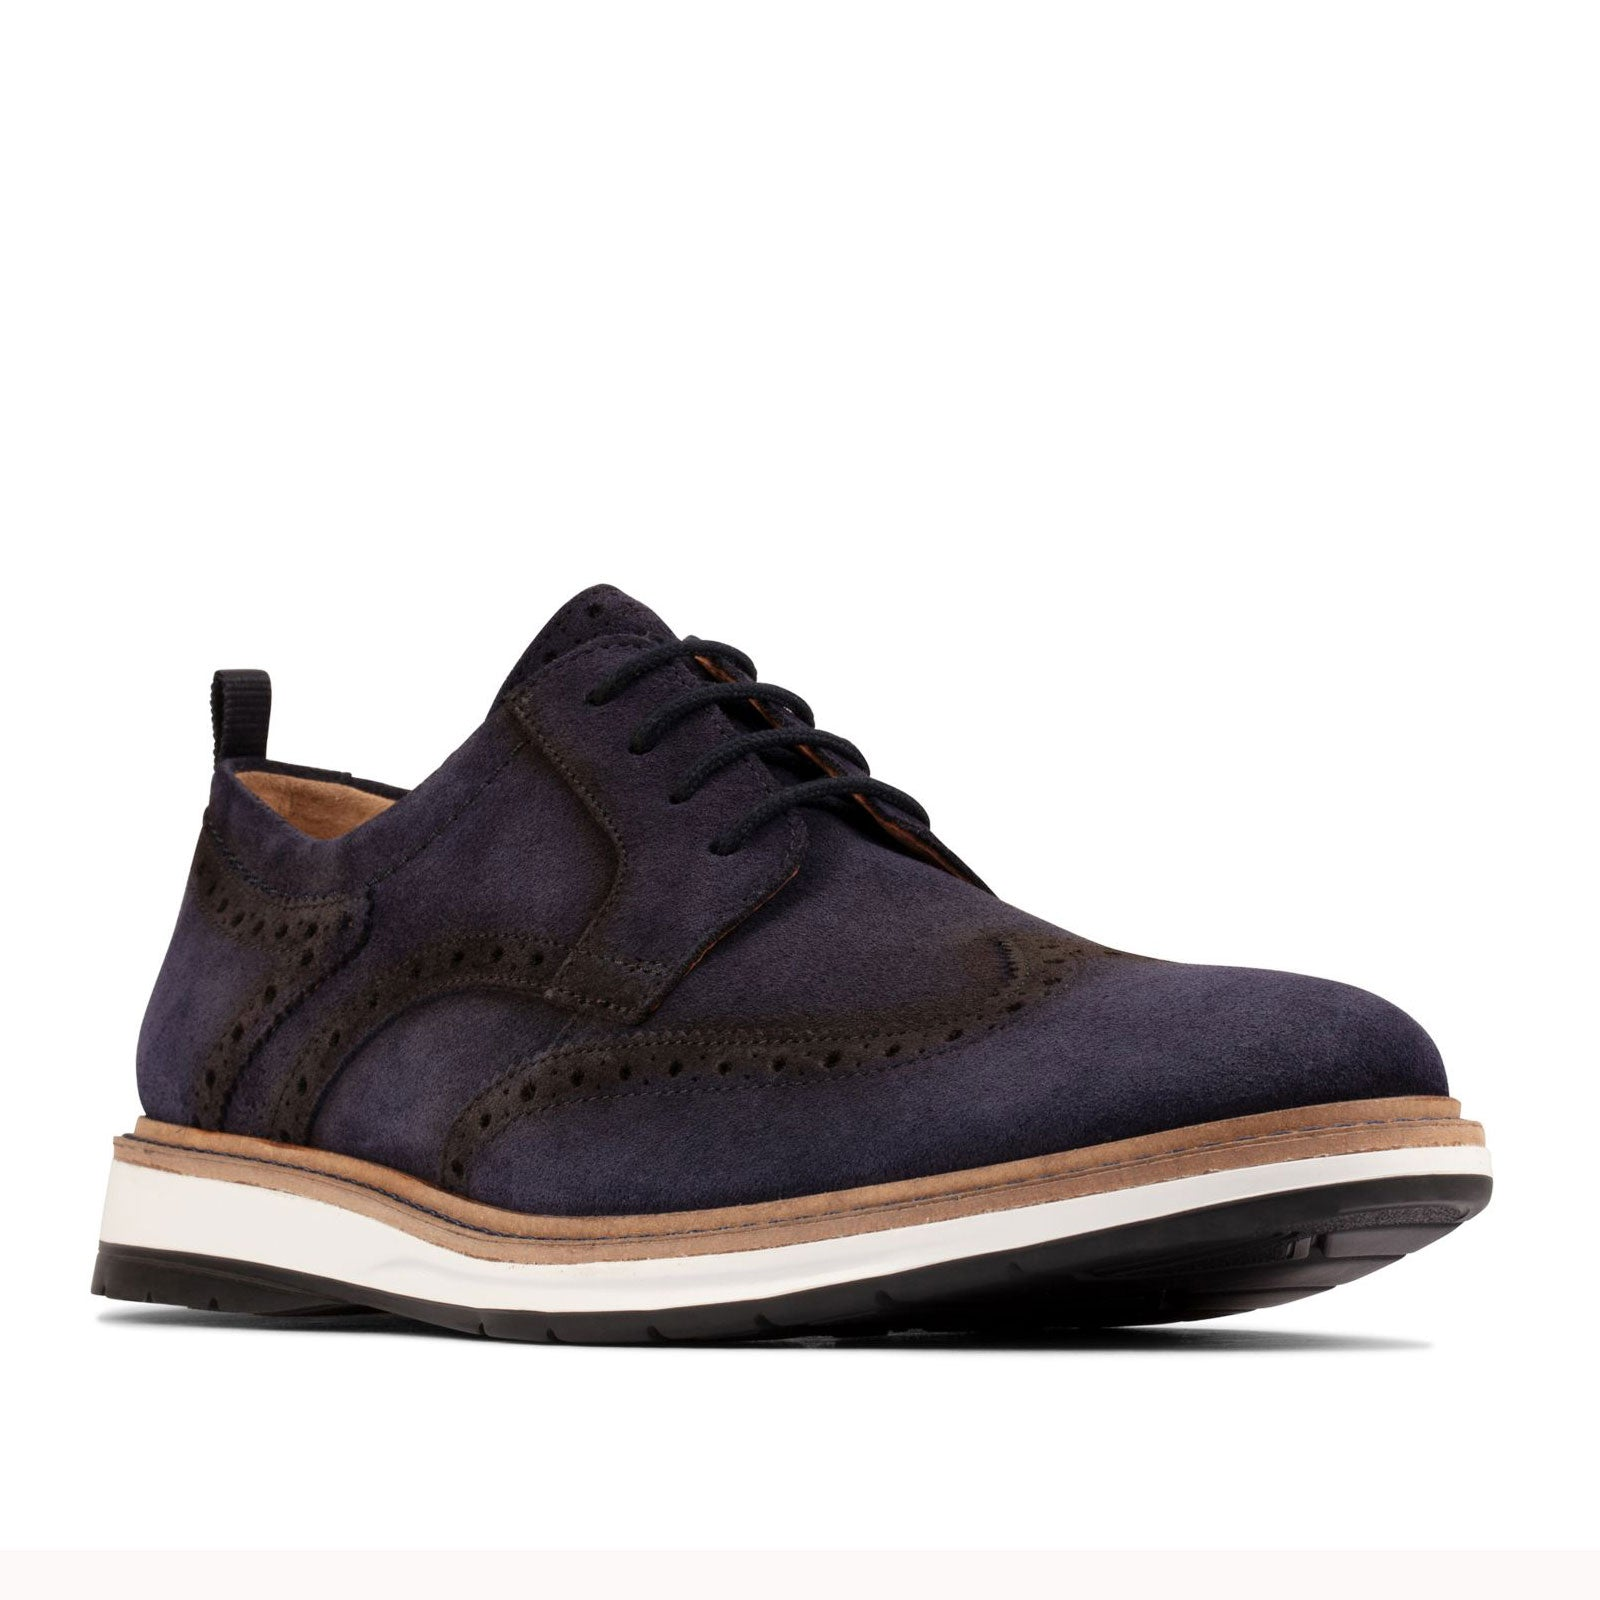 Clarks Chantry Wing 55073 (Navy Suede)